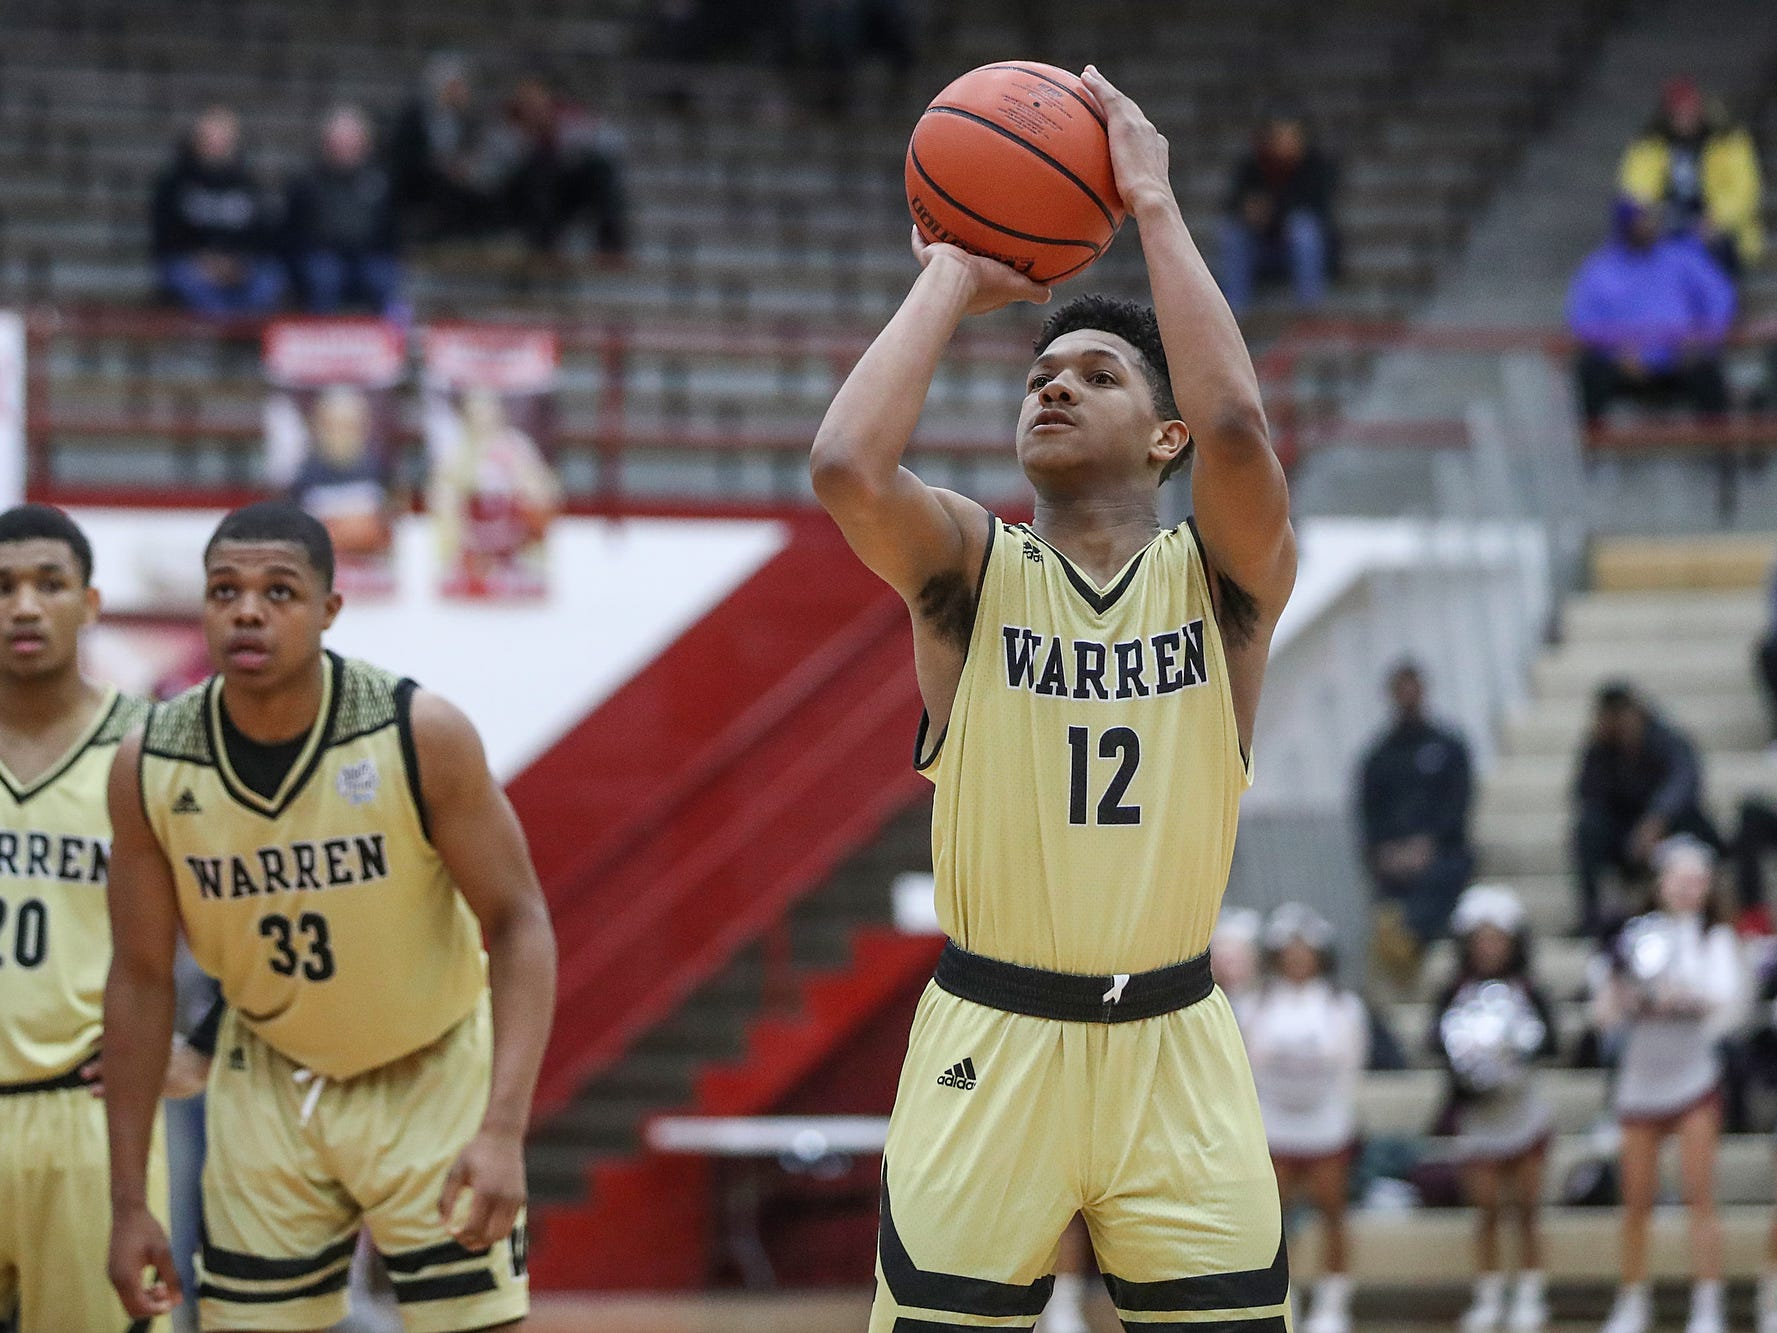 Warren Central Warriors Malik Stanley (12) scores two free throws at the foul line, to help clinch the Marion County tournament title over Lawrence Central, 60-56, at Southport High School in Indianapolis, Monday, Jan. 14, 2019. The victory marks a 46-game winning streak for the Warriors, the third-longest in state history.